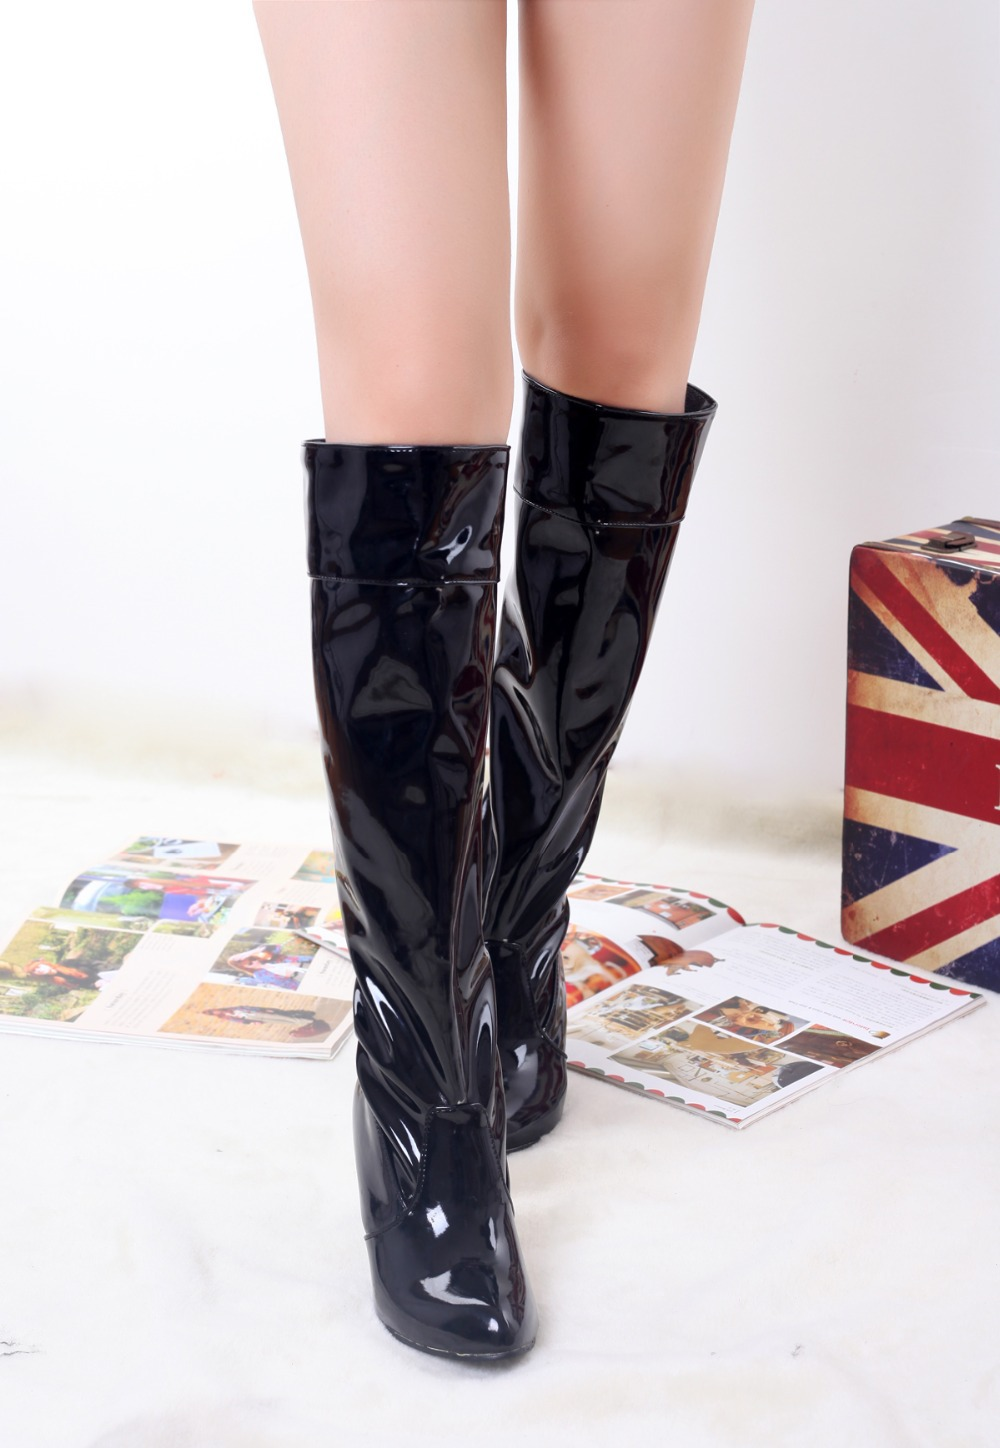 2015 winter Autumn New Slip-On Knee Boots Women Solid Colors Spike Heels Fashion Comfortable Big size 34-45 R1340 - chengdu women shoes store